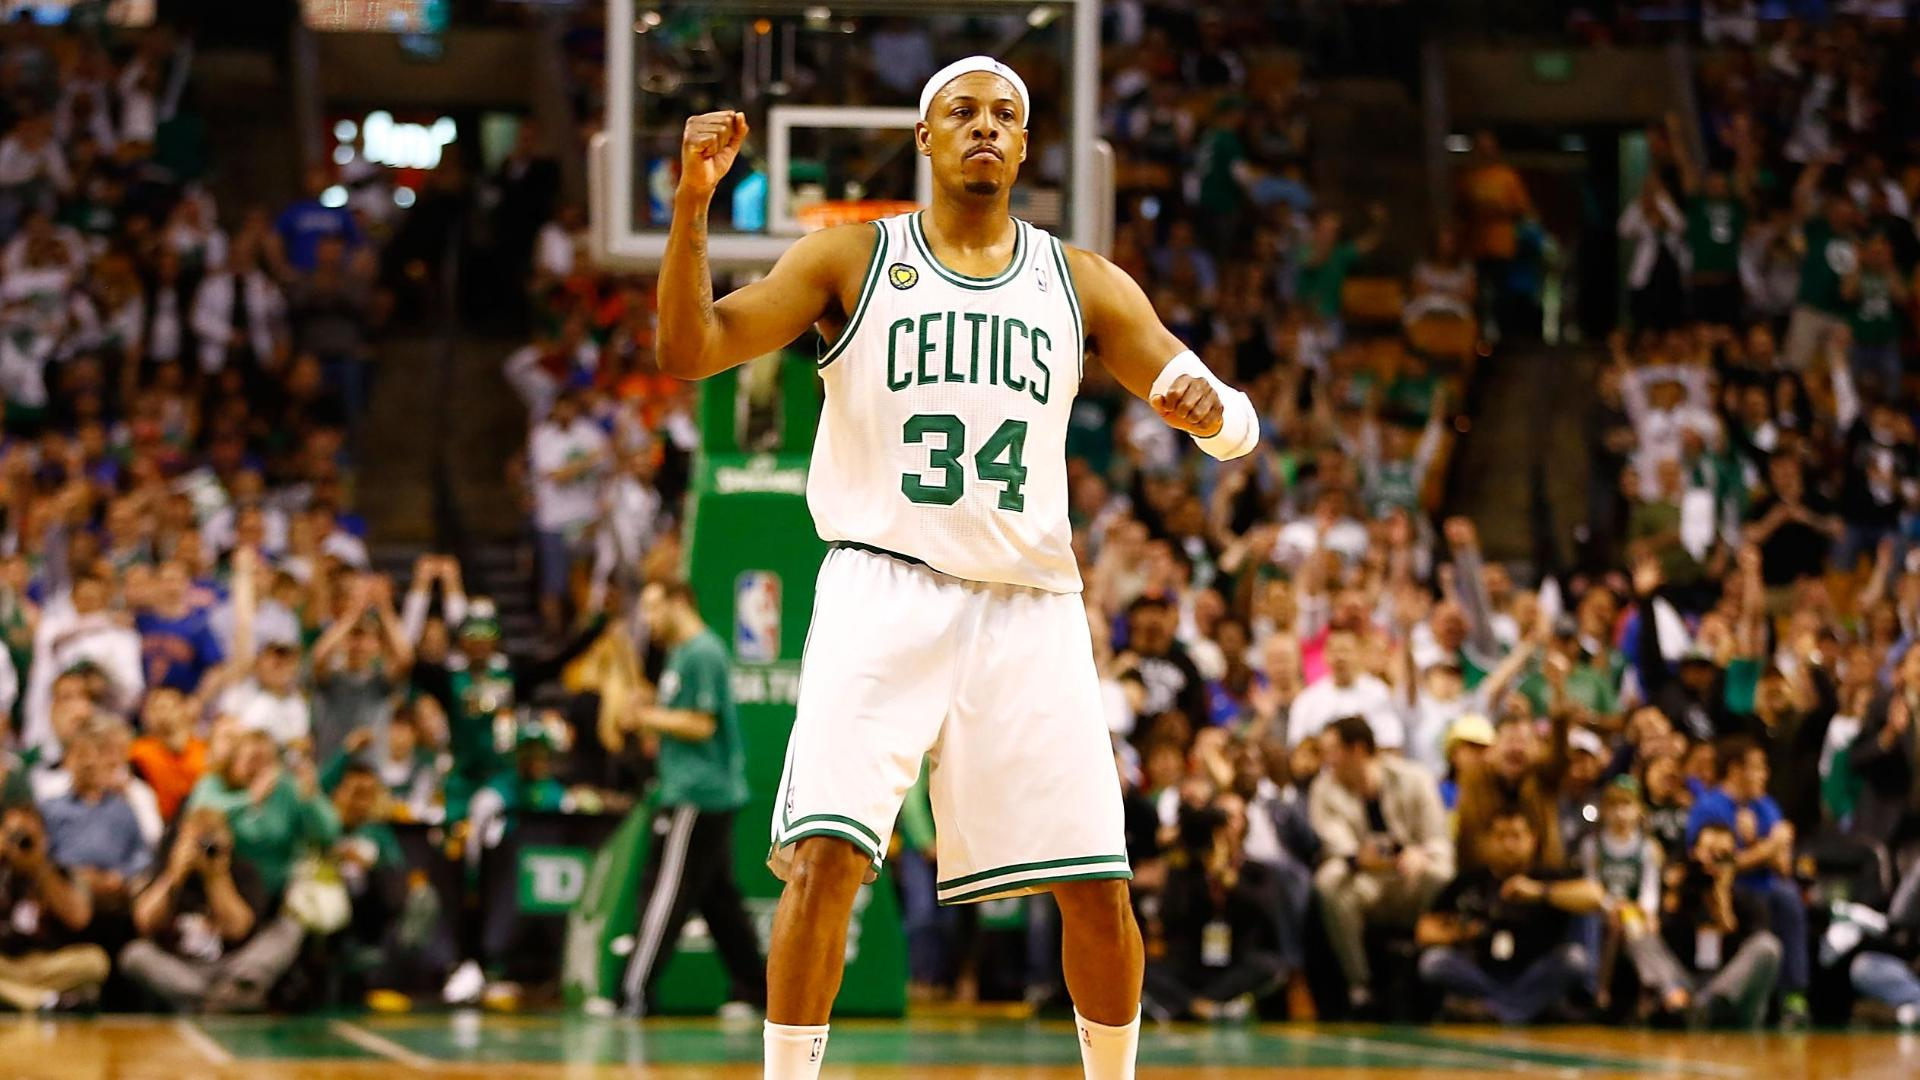 33d287e3c ESPNAPI IMG NO ALTEXT Value. 0 Shares. Email. The Boston Celtics signed Paul  Pierce ...